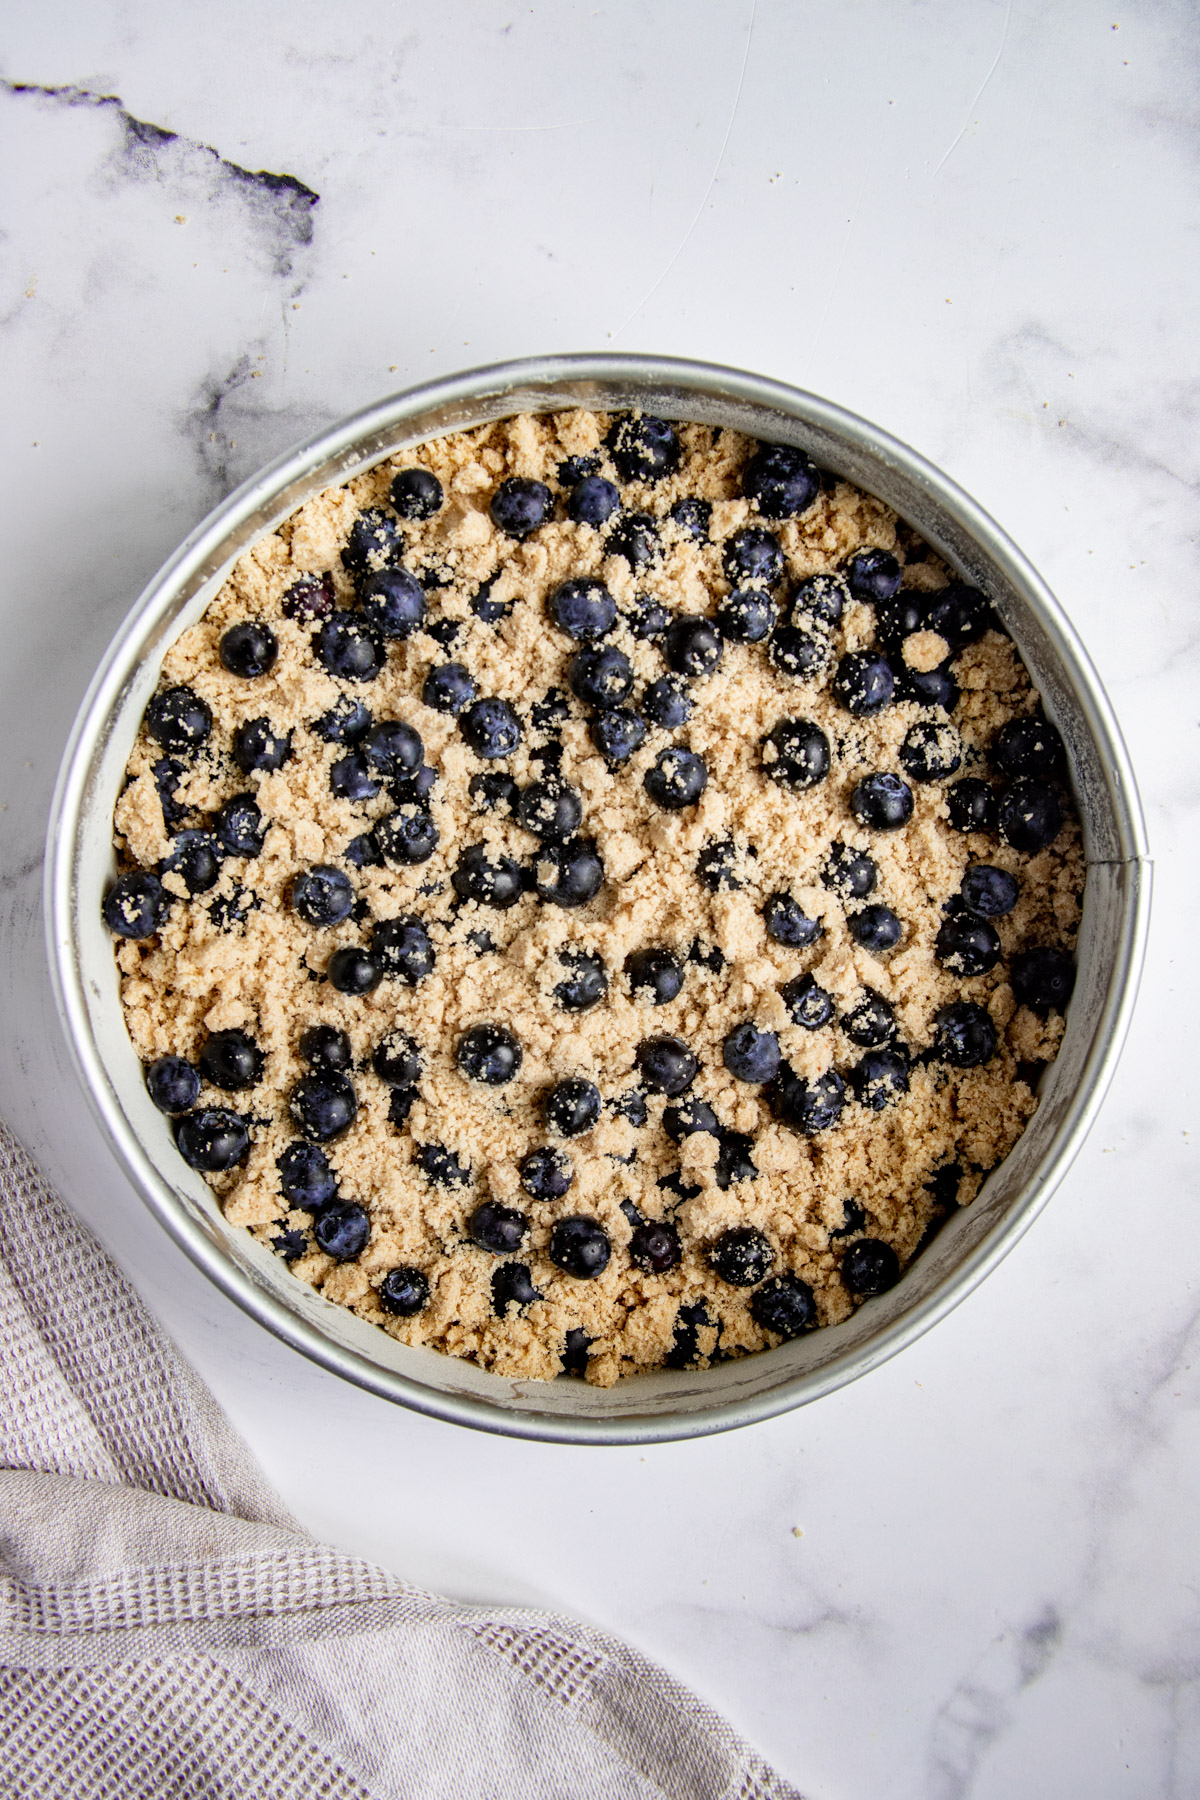 Blueberry Coffee Cake batter in springform pan with fresh blueberries and streusel